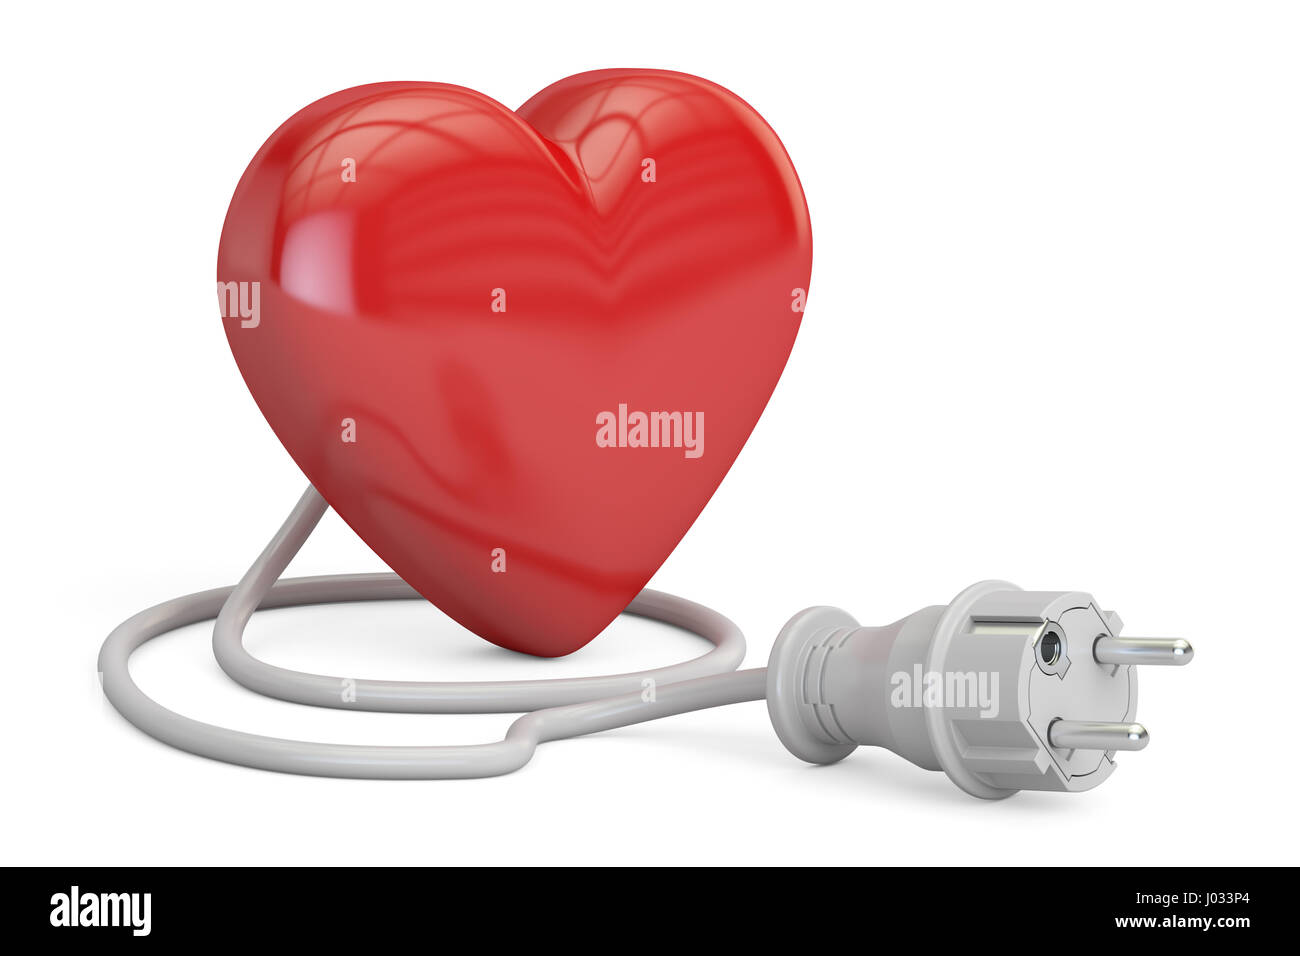 Red heart with electrical plug, 3D rendering isolated on white background Stock Photo